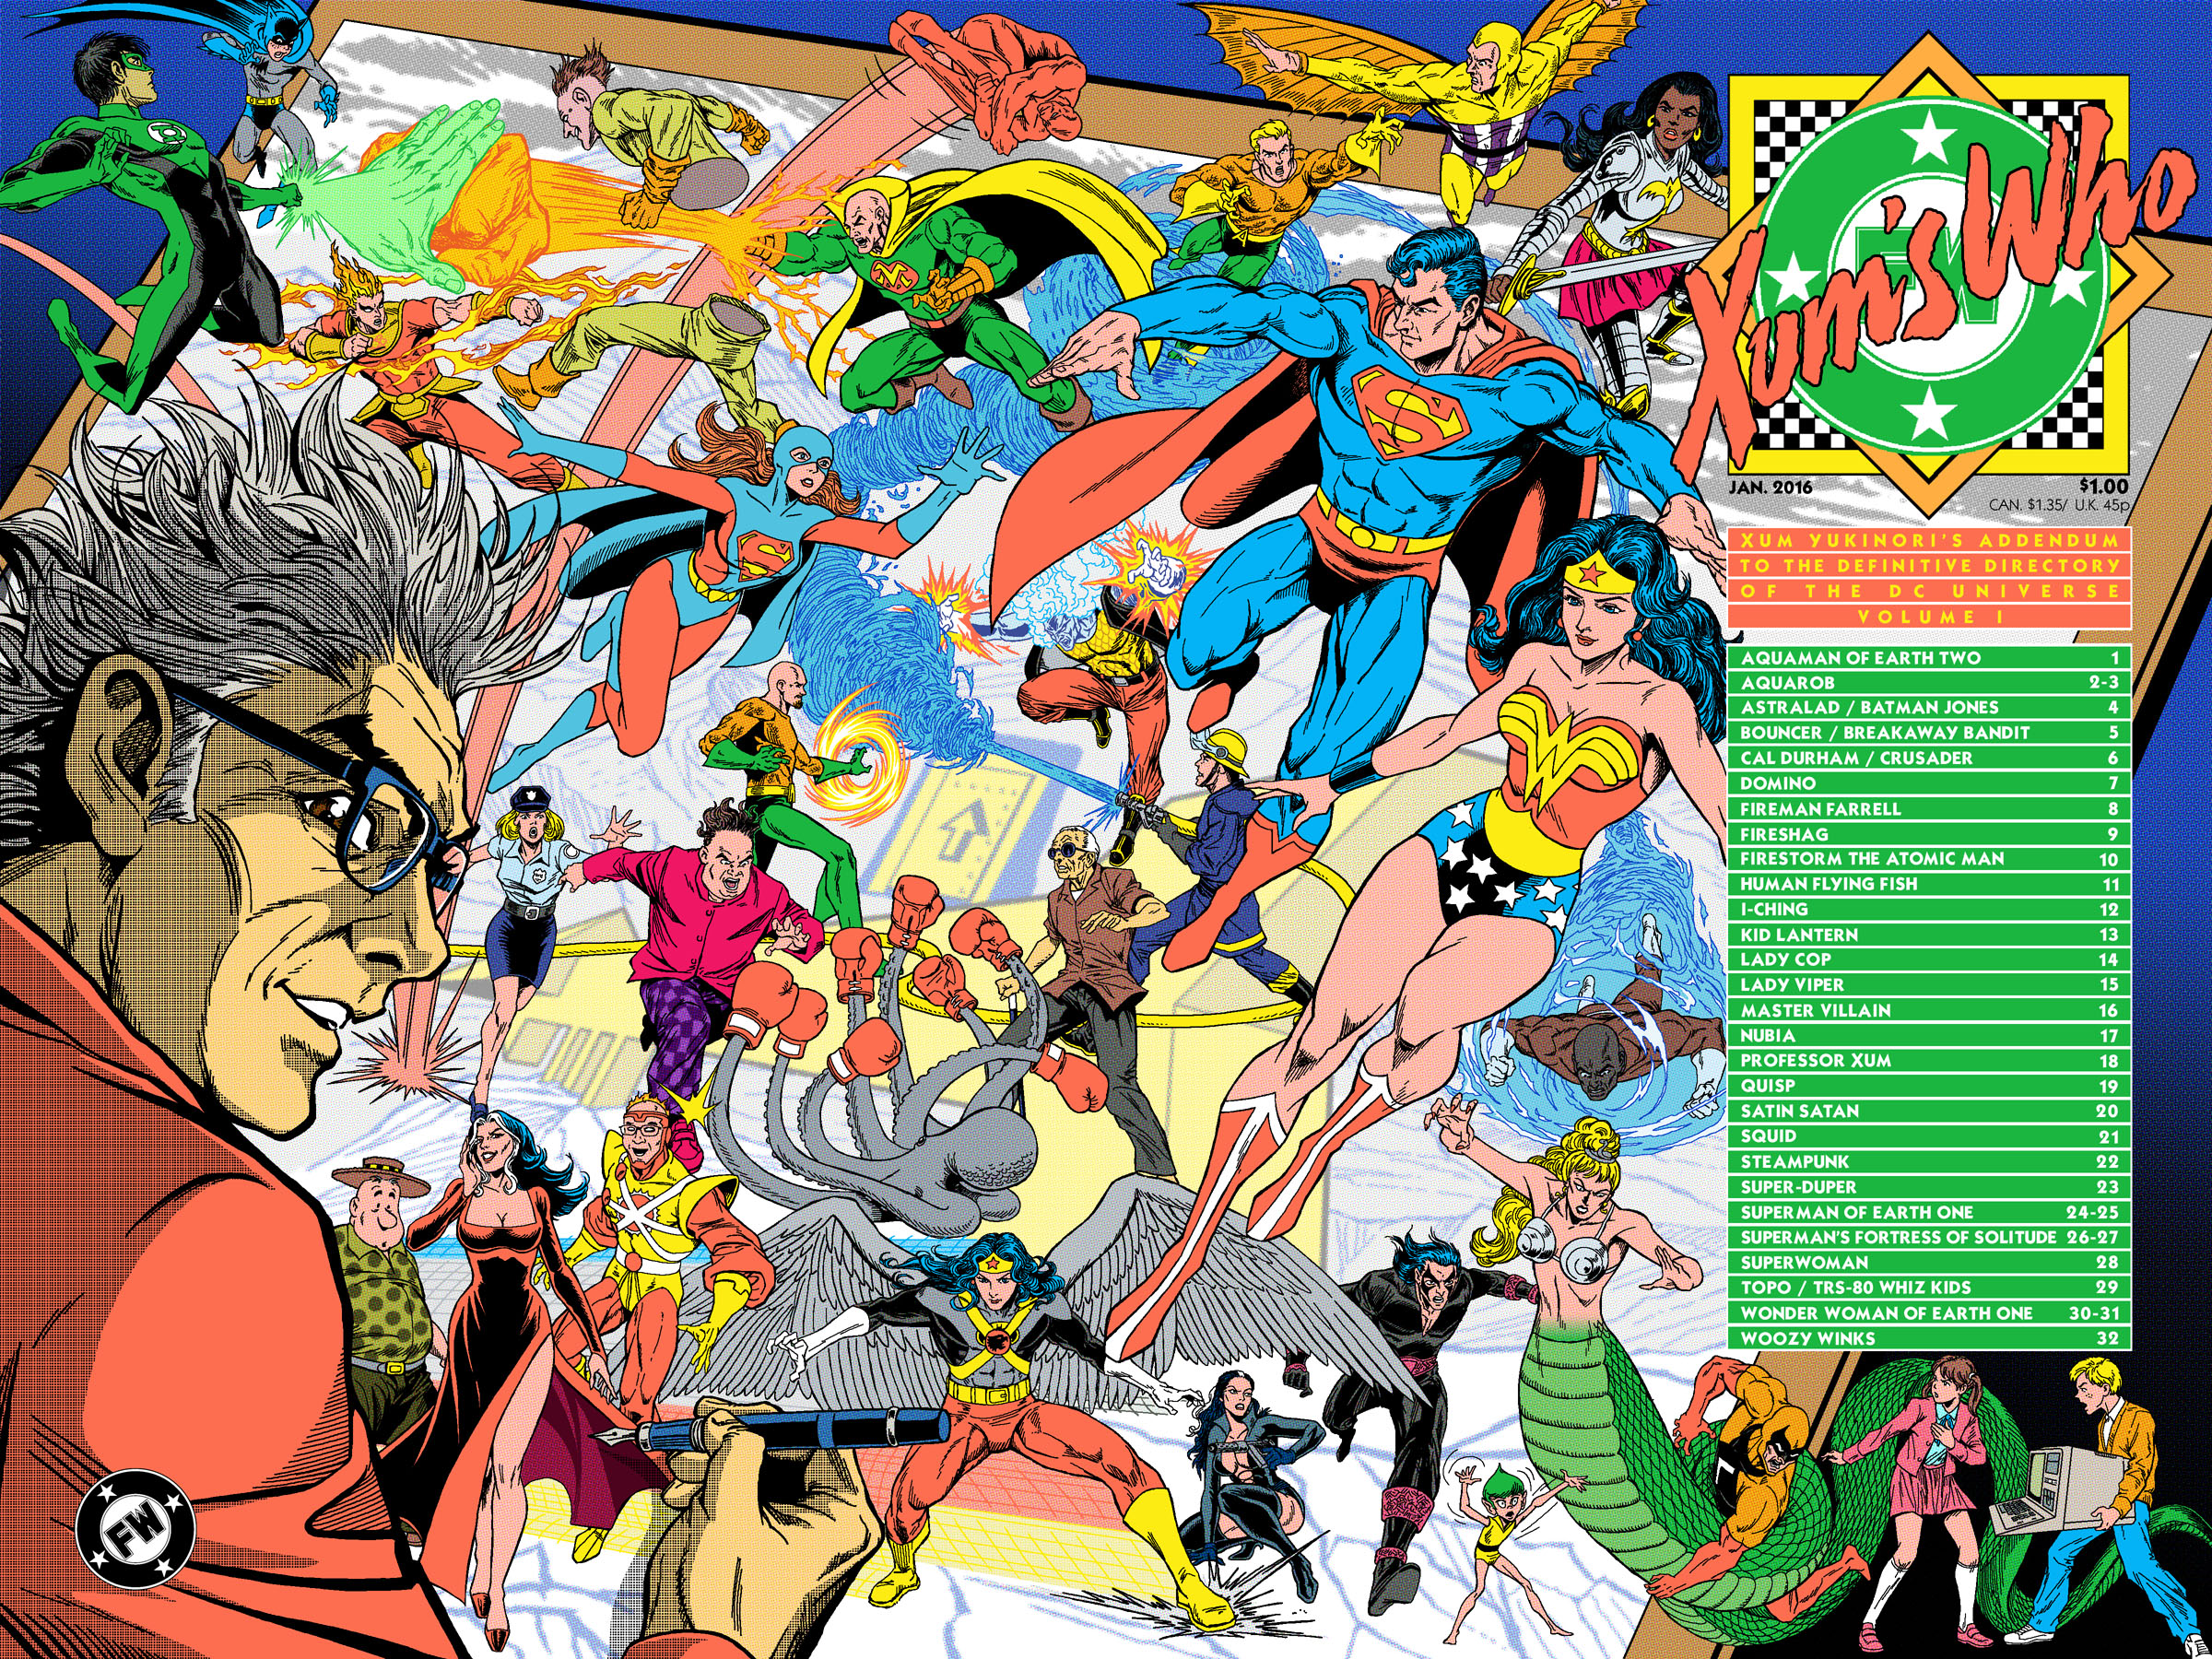 Xum Yukinori's Addendum to the Definitive Directory of the DC Universe Volume 1 comic cover!